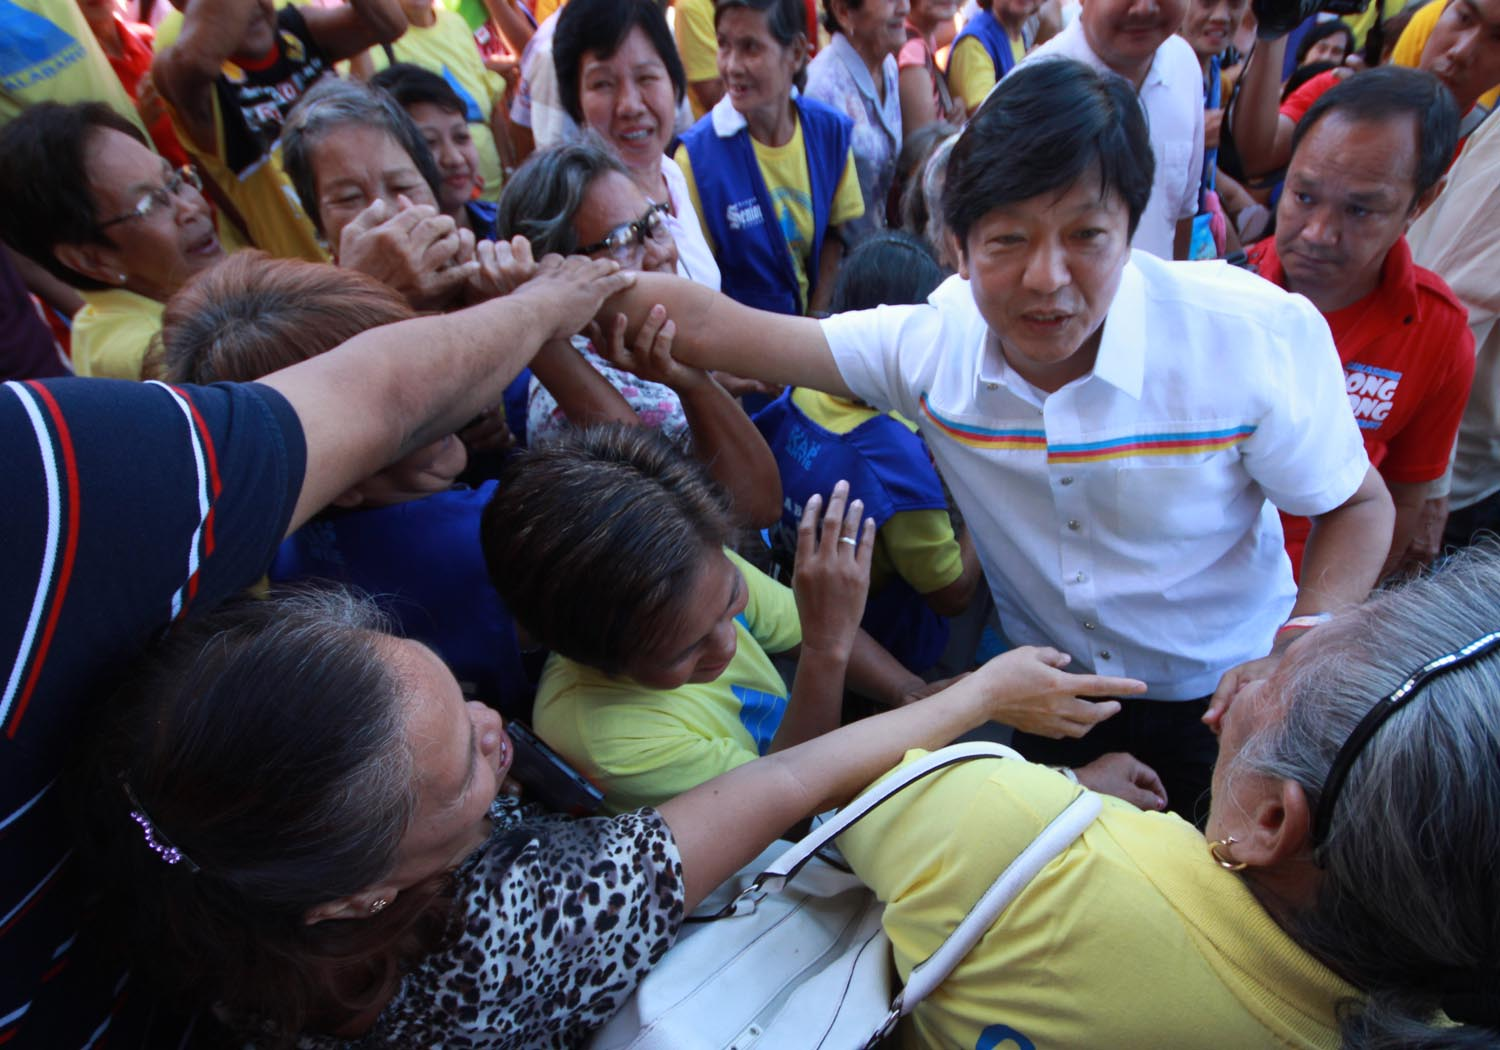 How Bongbong Marcos mirrors father's image in campaign 9